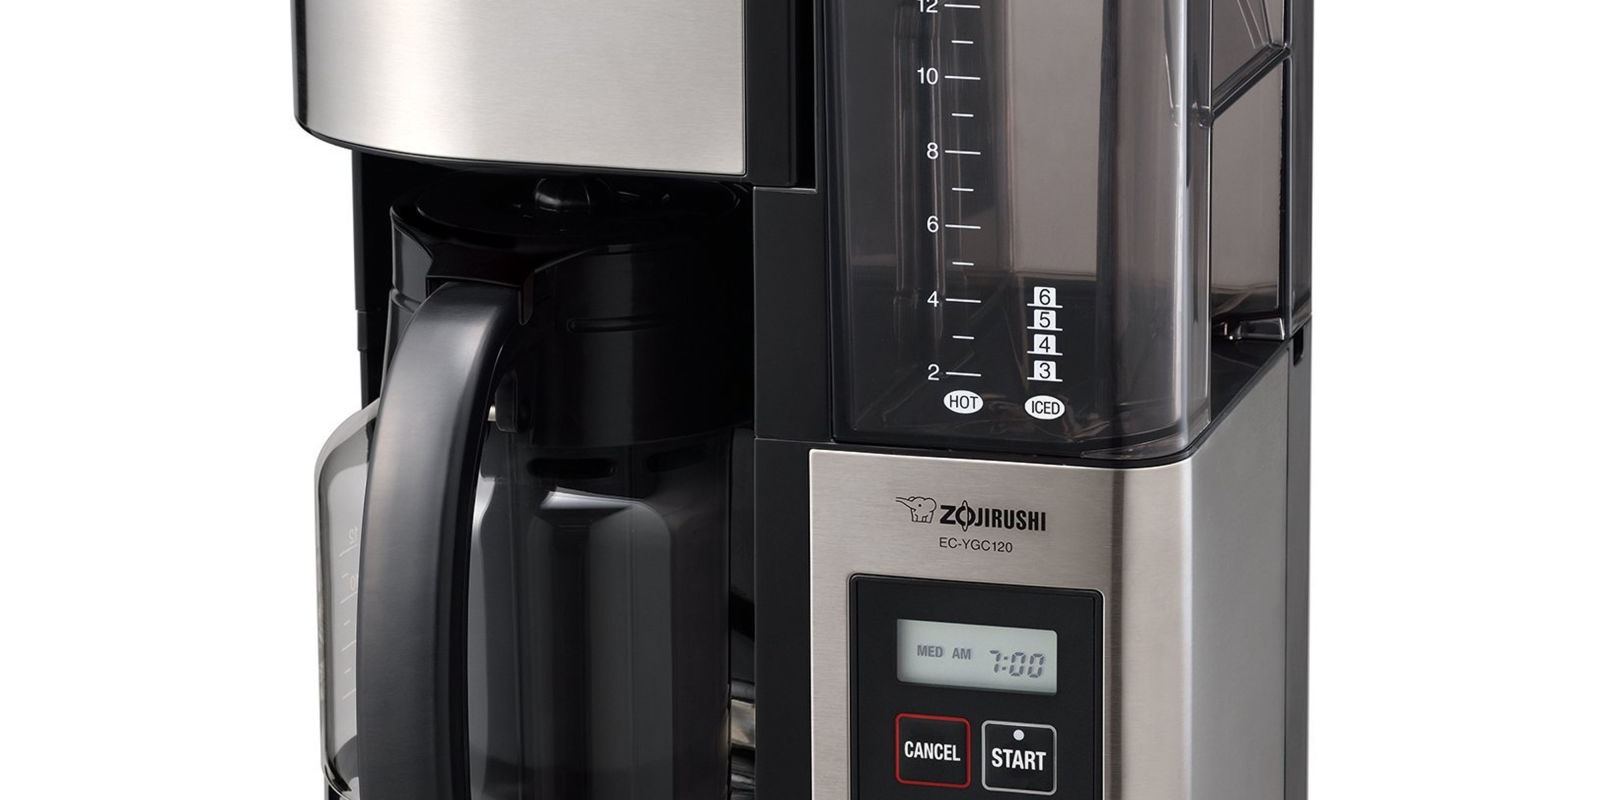 Coffee Maker Zojirushi Review : Zojirushi Fresh Brew Plus #EC-YGC120 Coffeemaker Review, Price and Features